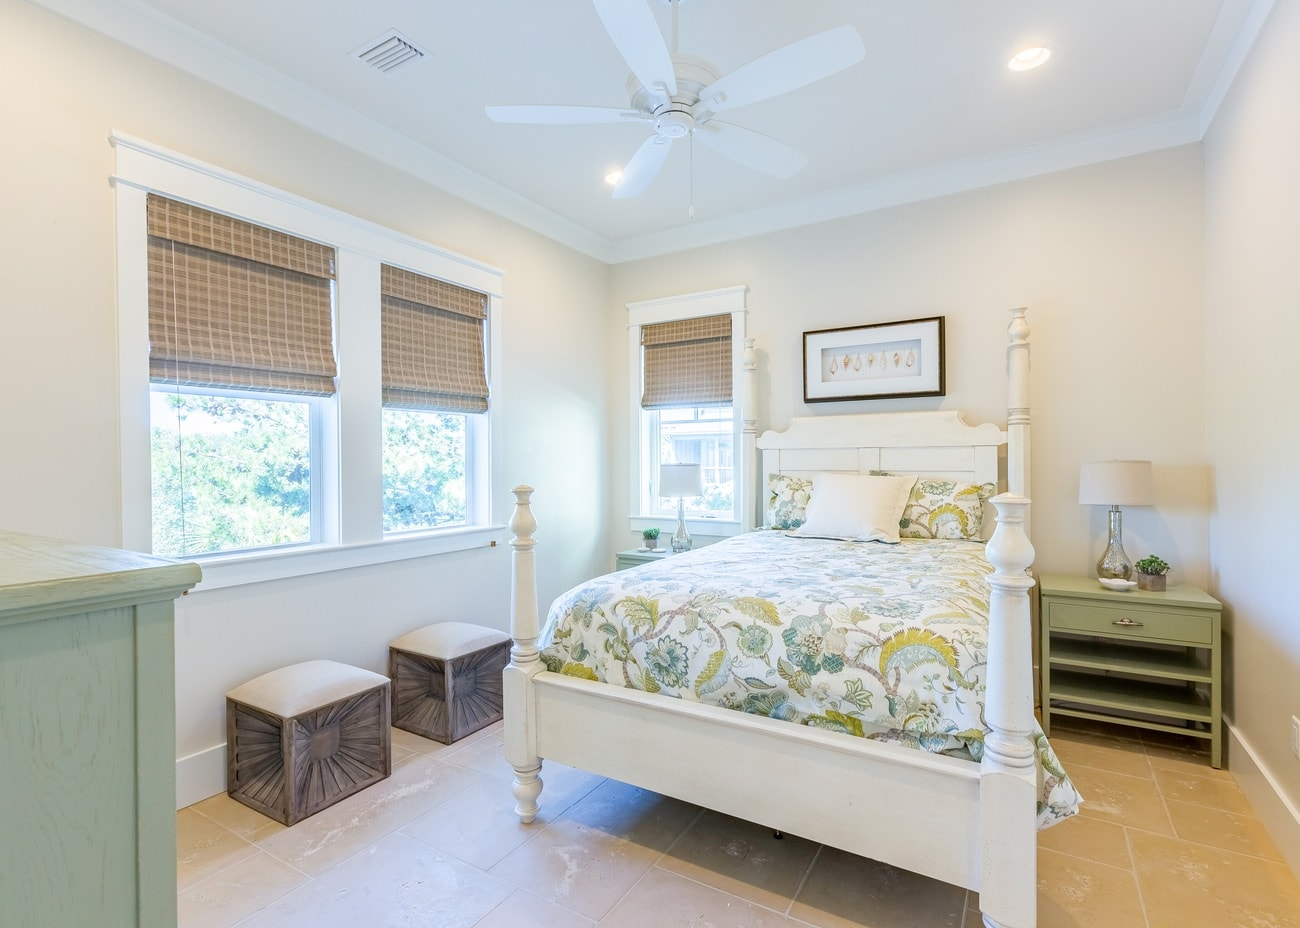 Home interior design by Sugar Beach Interiors, Panama City Beach, Florida.